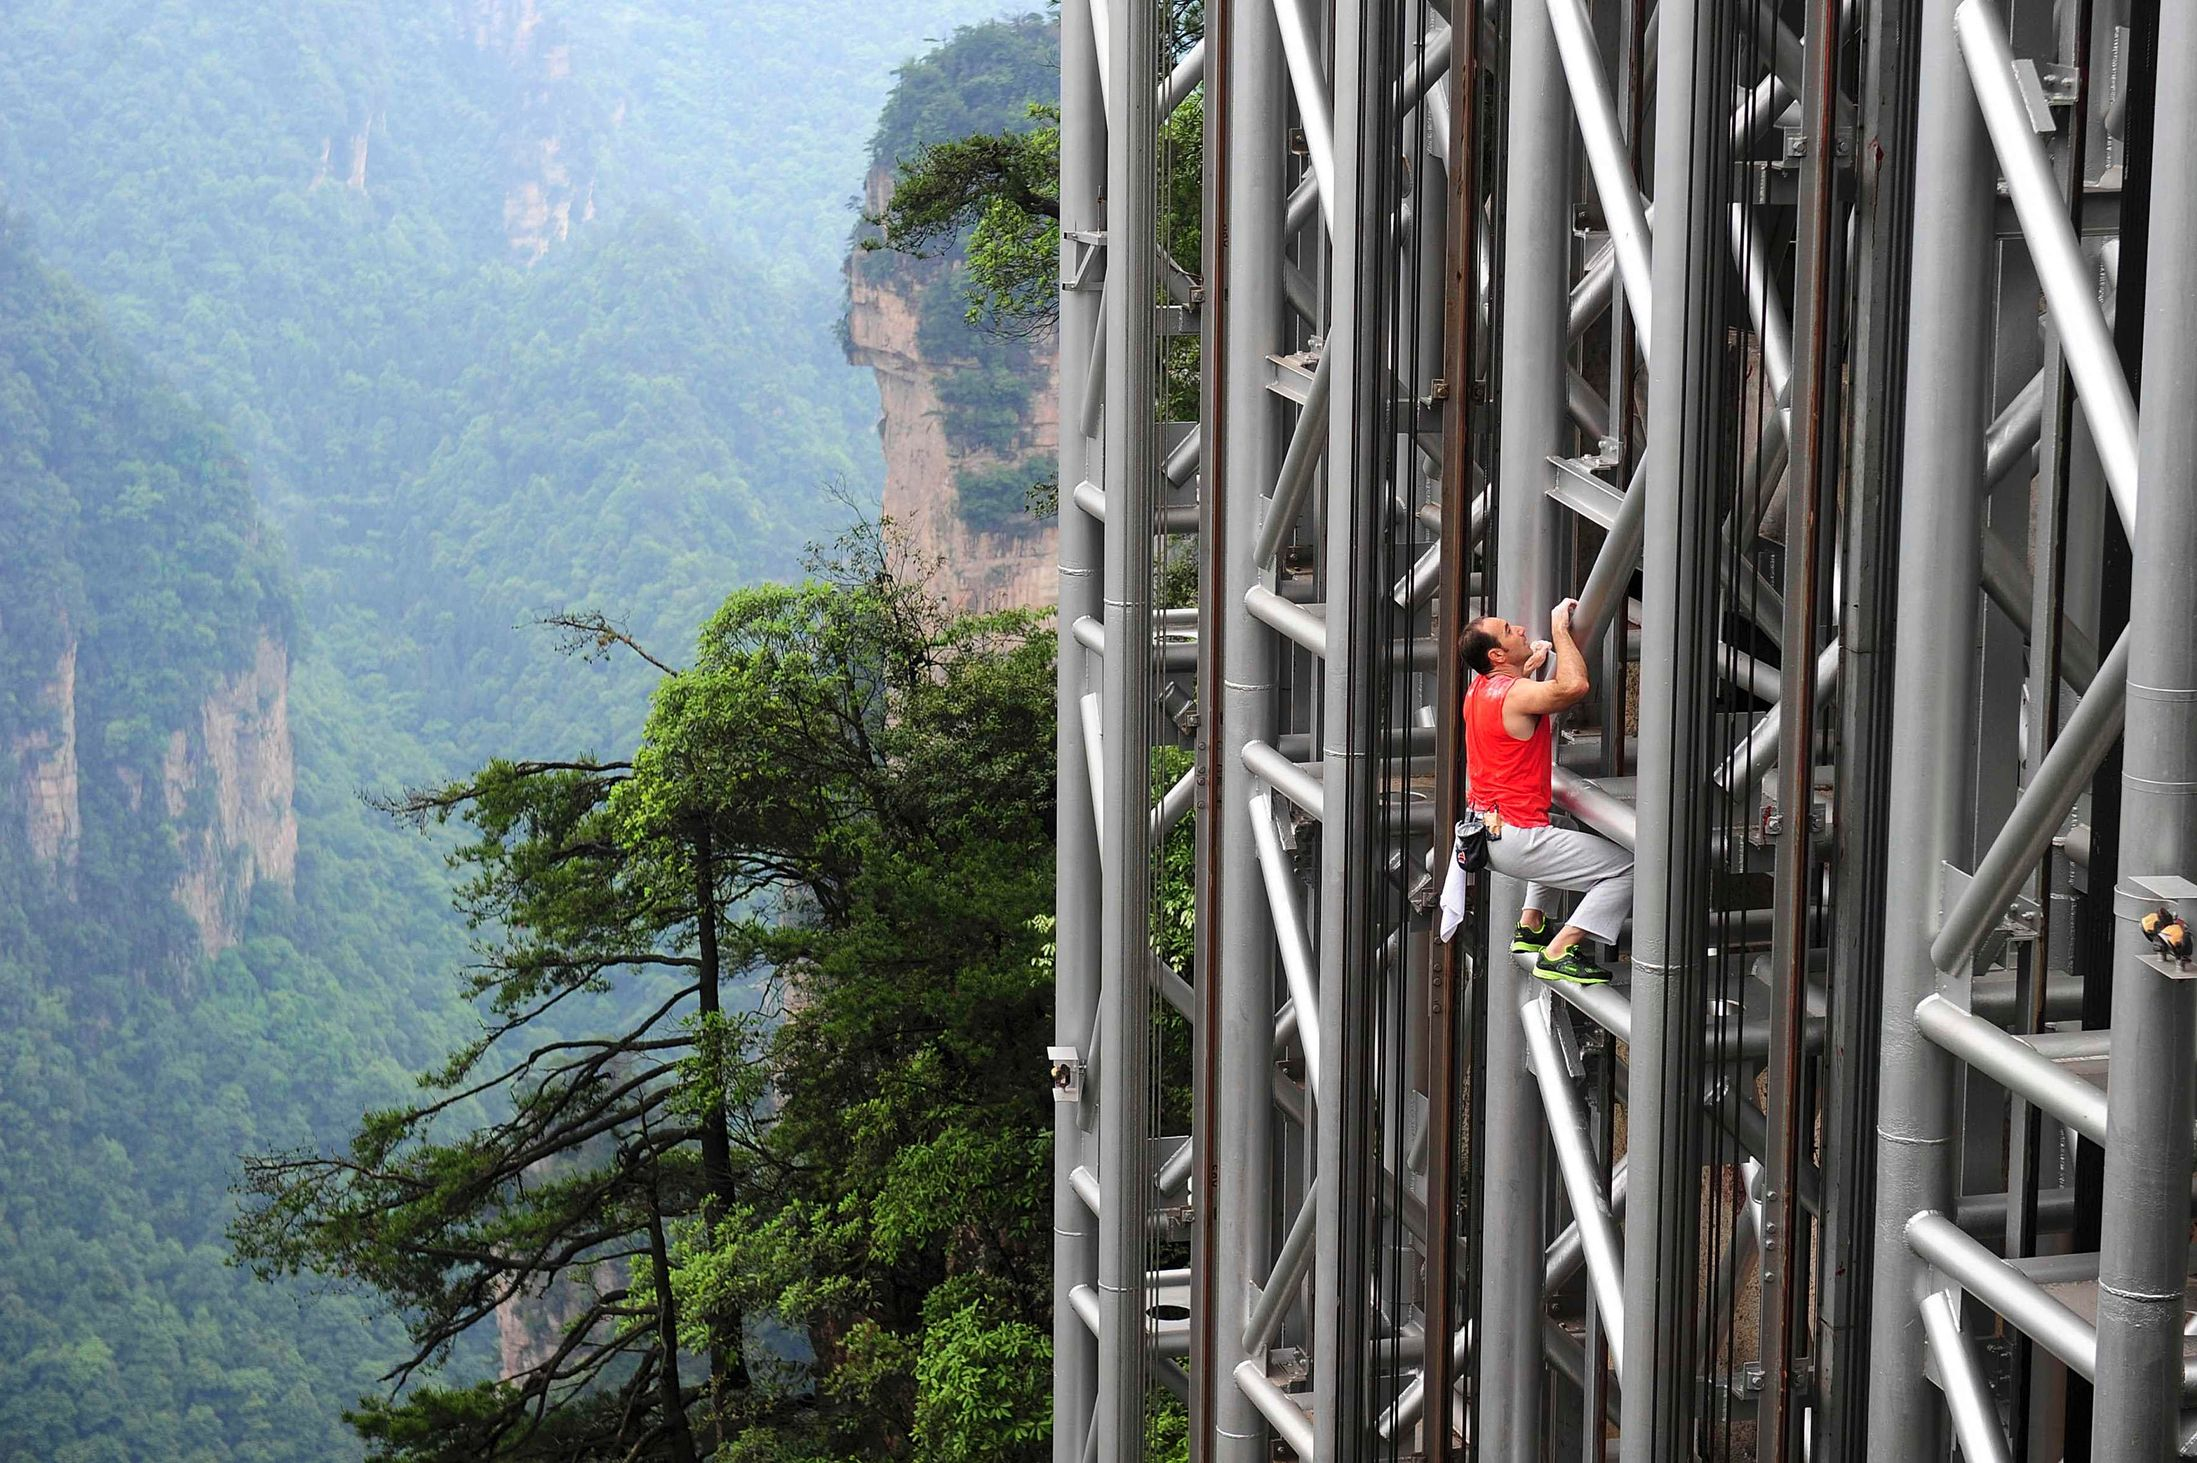 Frances-daredevil-climber-Jean-Michel-Casanova-climbs-the-Bailong-Elevator-near-a-cliff-in-Chinas-Hunan-province